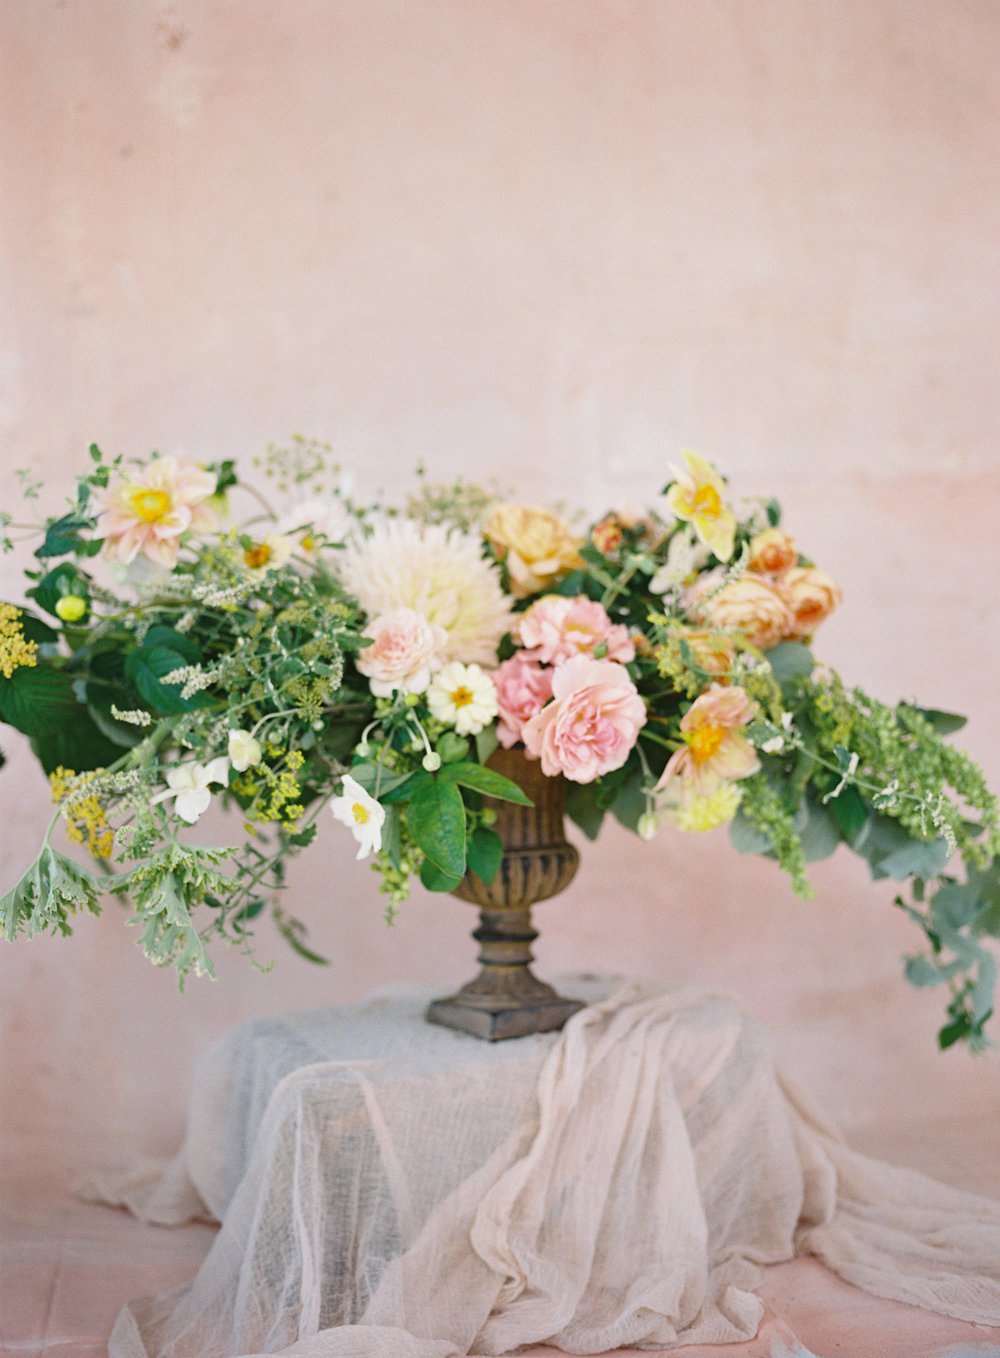 Merry Floral is a floral design studio in Baton Rouge, Louisiana specializing in refined and romantic floral arrangements for weddings, businesses, and other events. - Inquire about our services   →